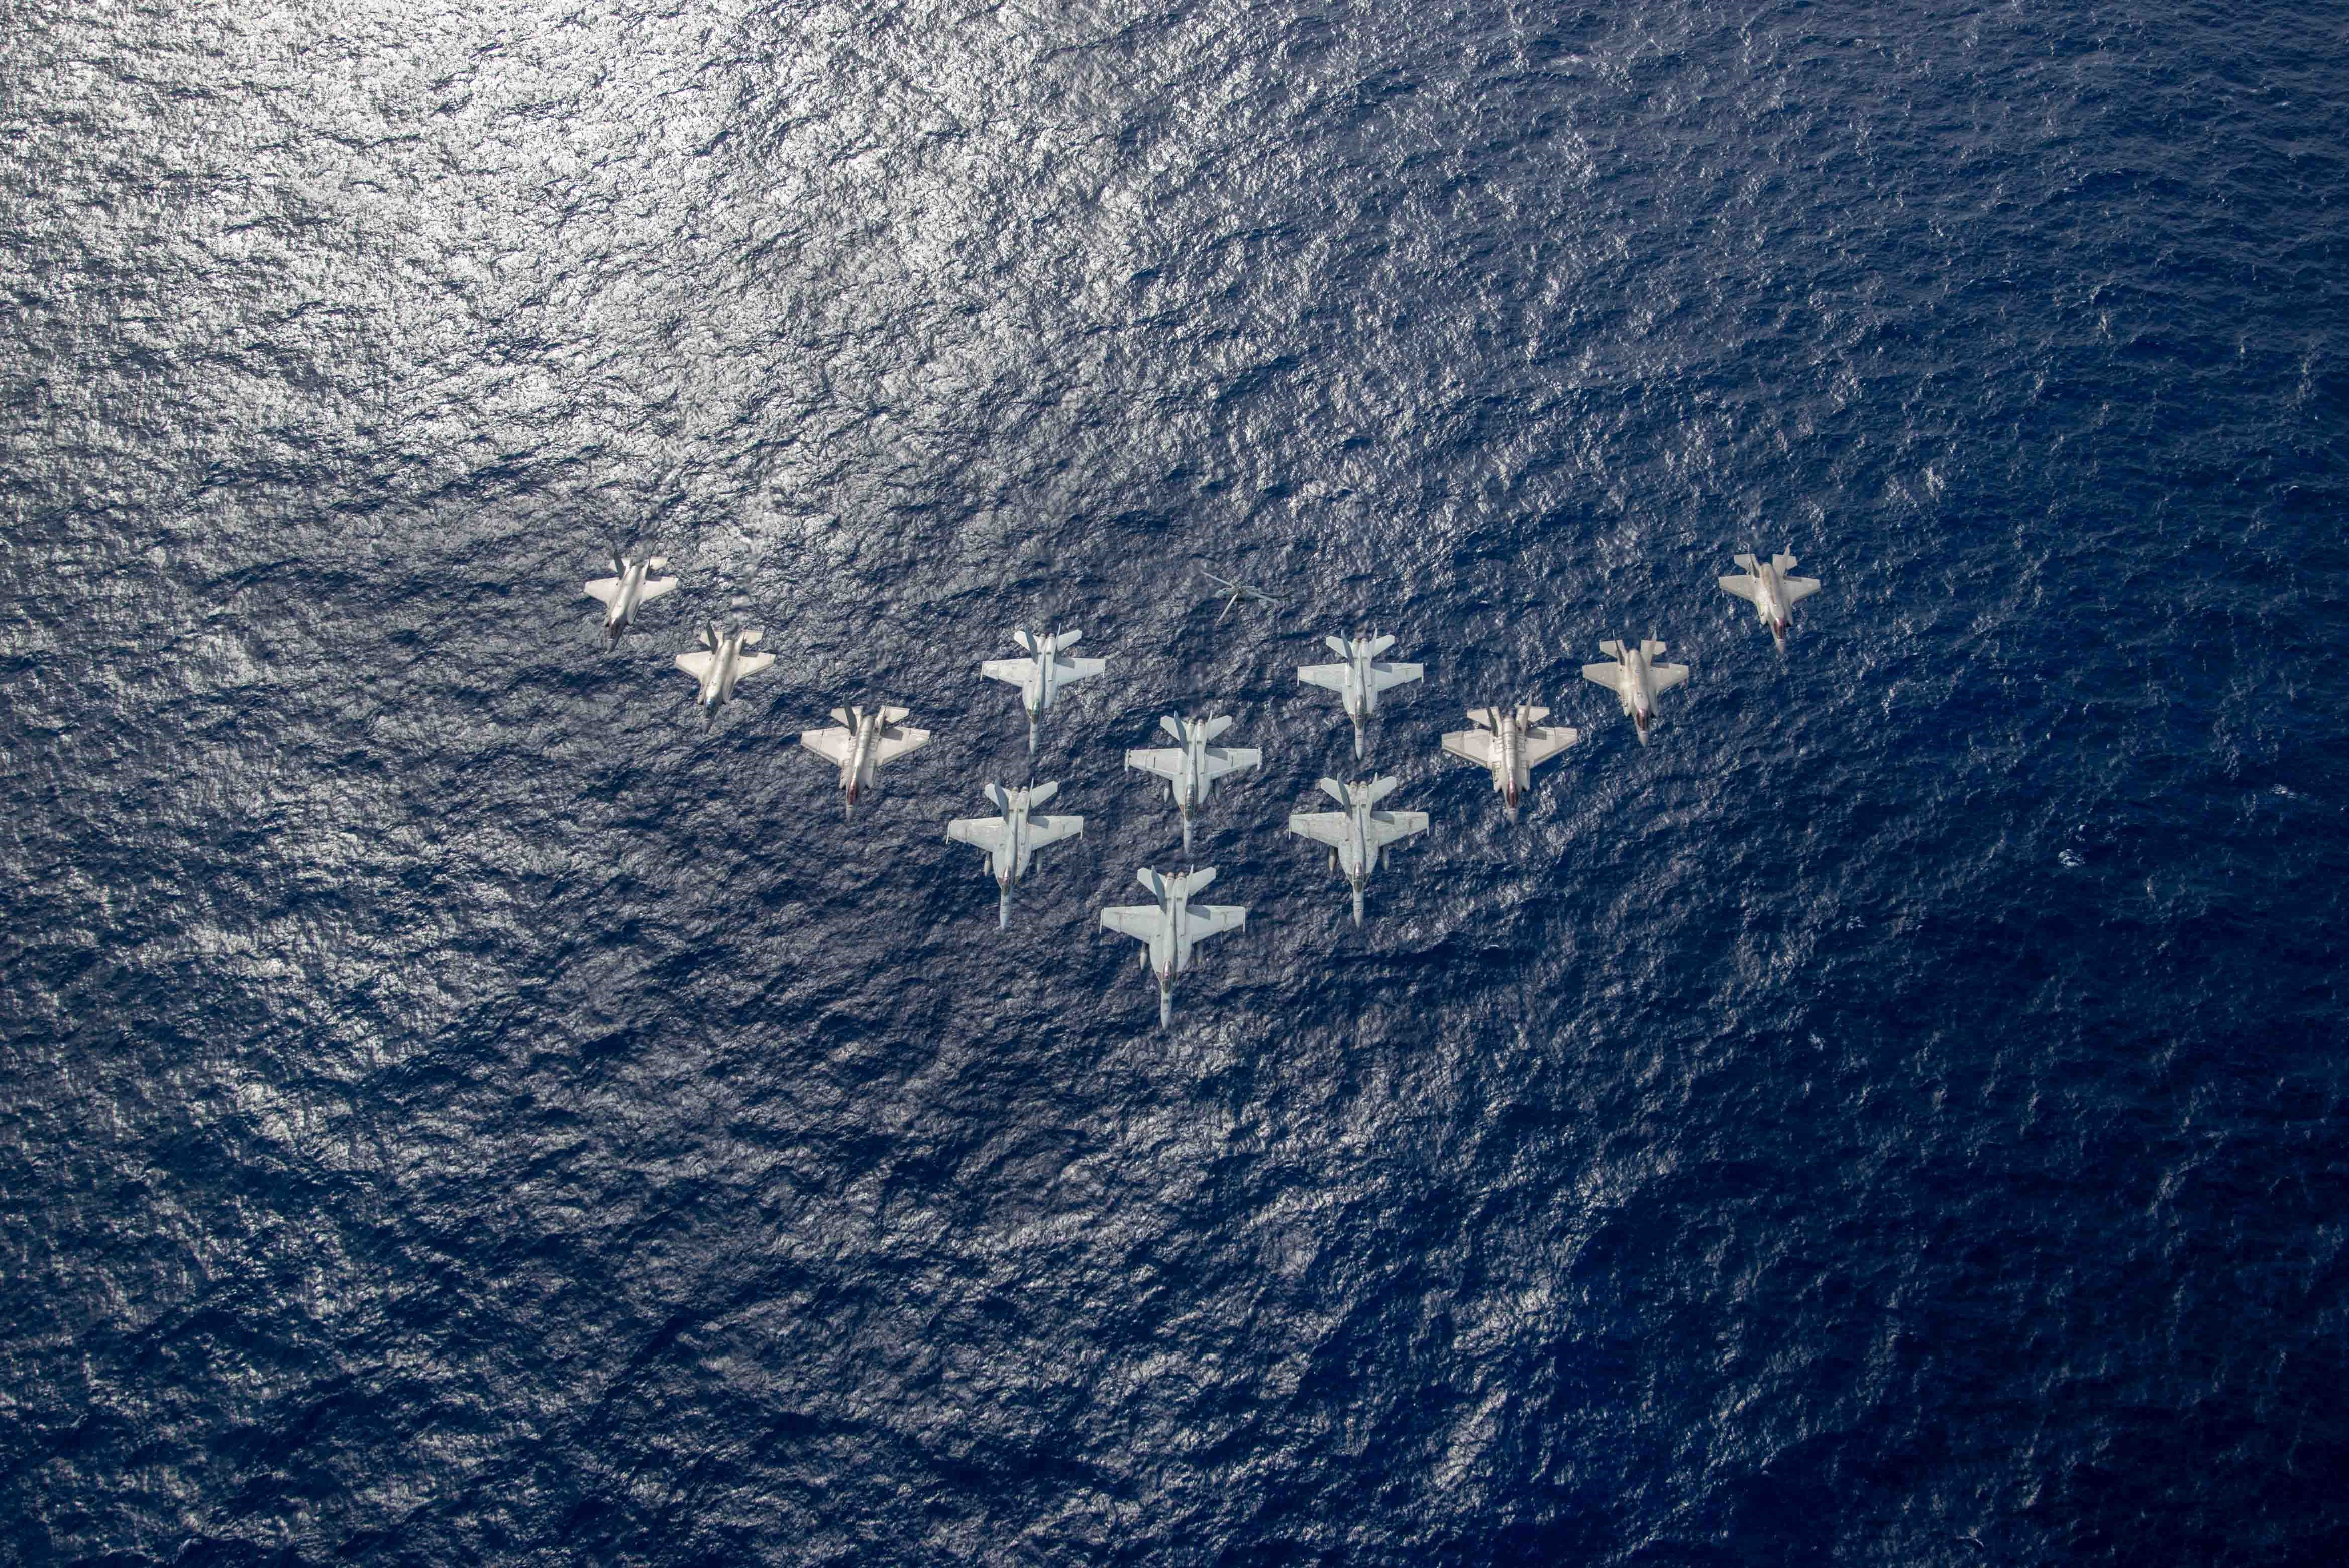 US Navy F/A-18E/Fs, F-35Cs and RAF/USMC F-35Bs flyover in Indo-Pacific 03-10-21 [US Navy]